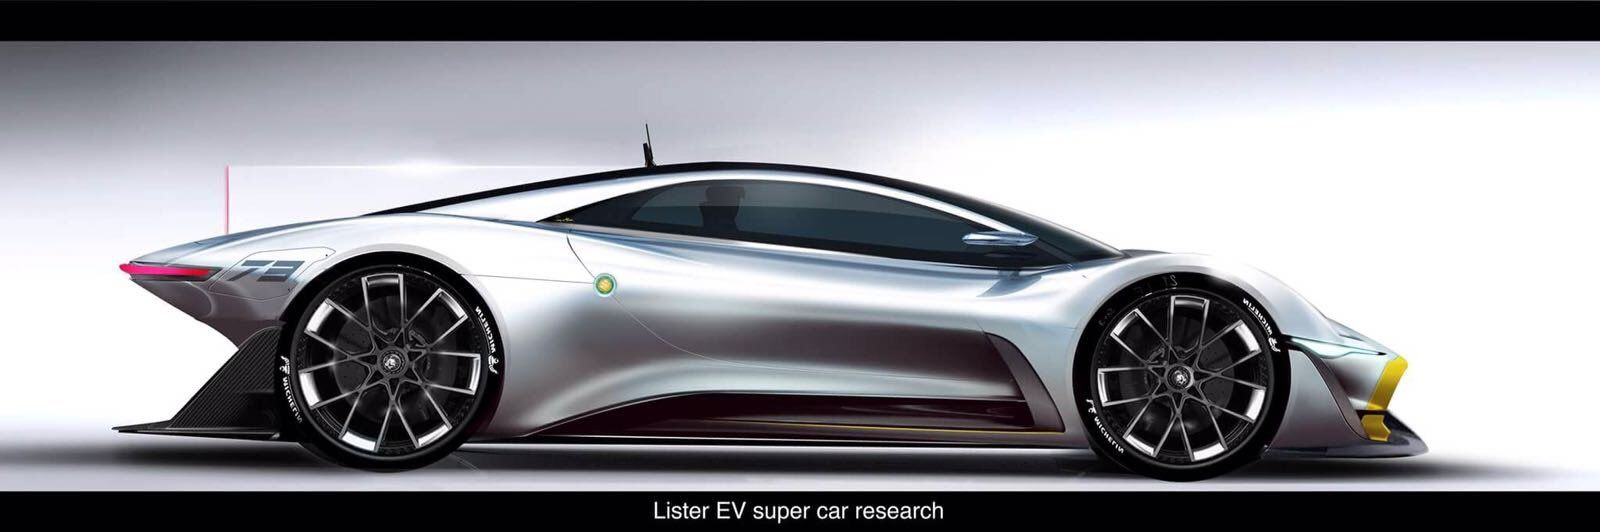 Lister's Upcoming Storm II Hypercar Could Be Fully Electric